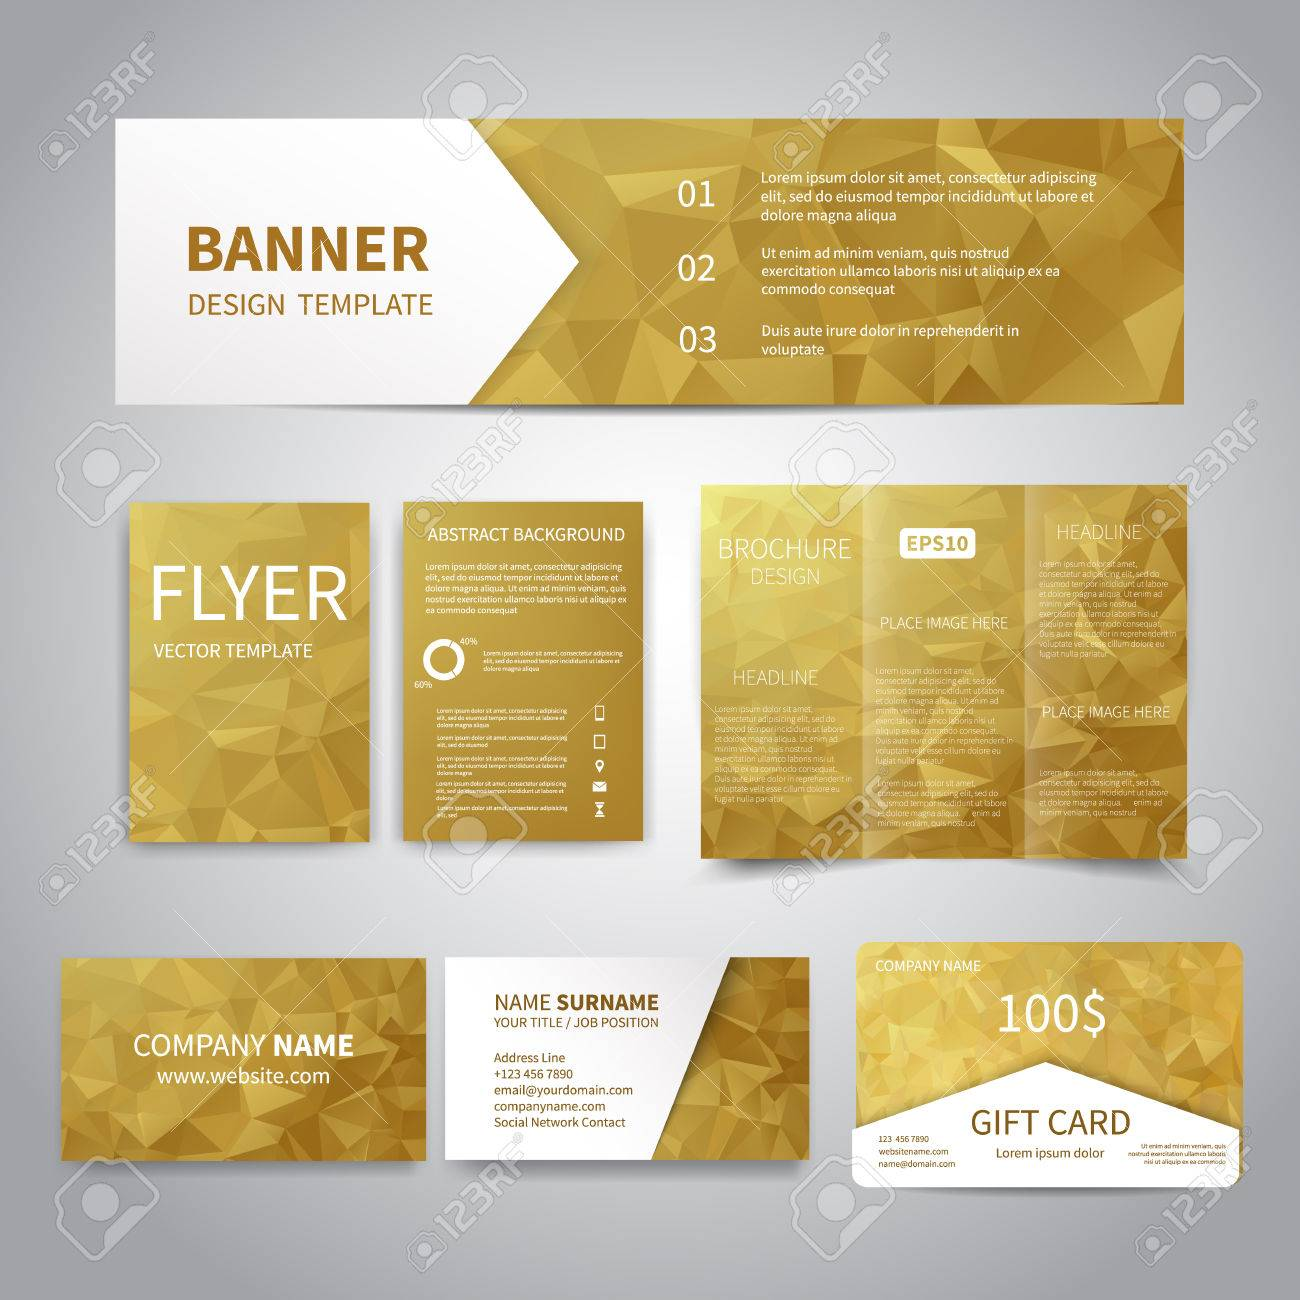 Banner Flyers Brochure Business Cards Gift Card Design Templates